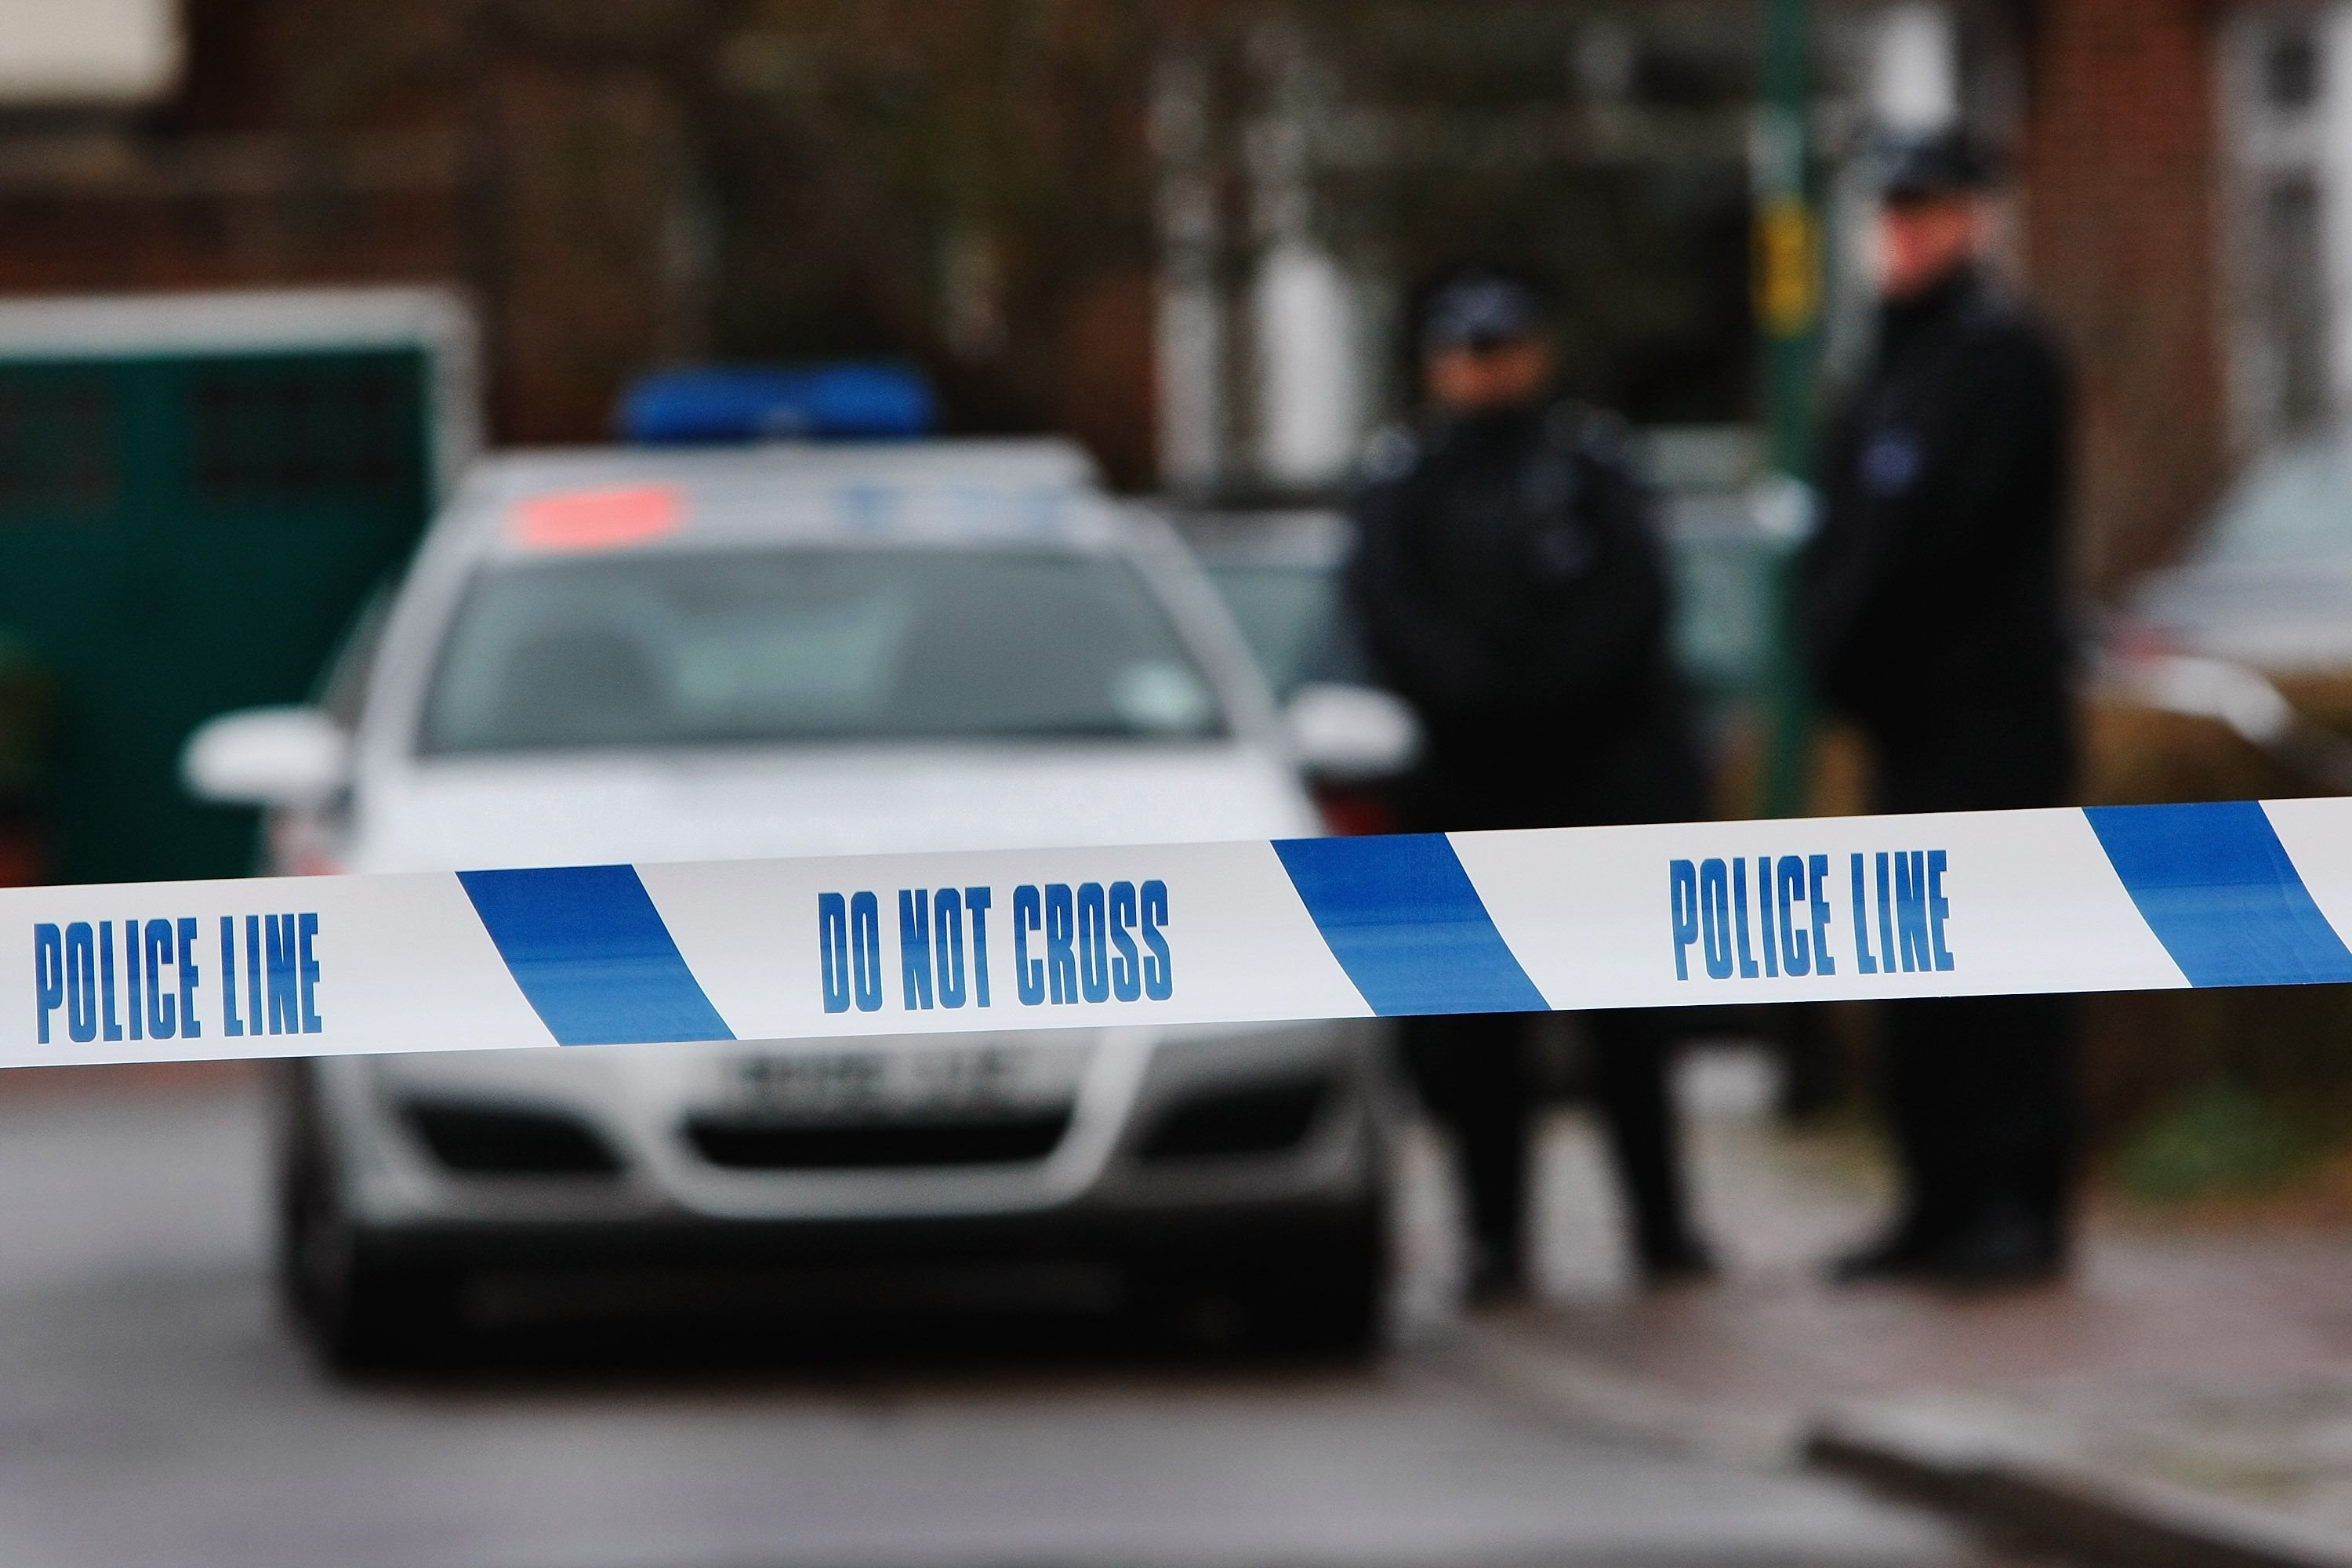 Police officers in a crime scene blocked by tape. | Source: Getty Images